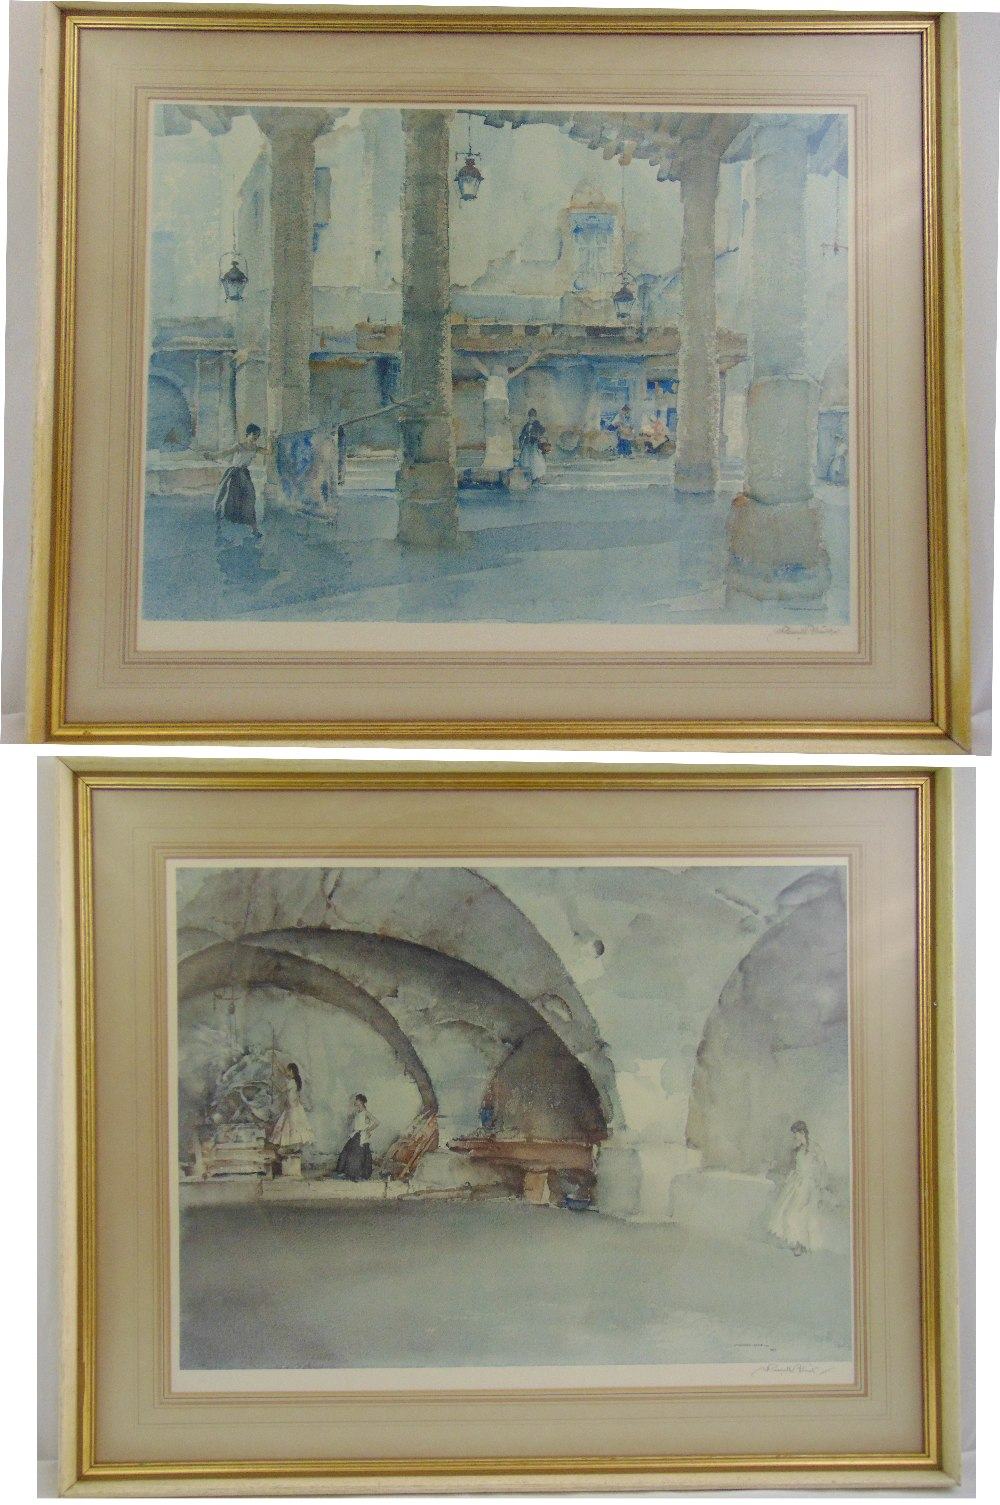 Lot 41 - Two framed and glazed Russell Flint polychromatic lithographs signed bottom right, gallery stamped